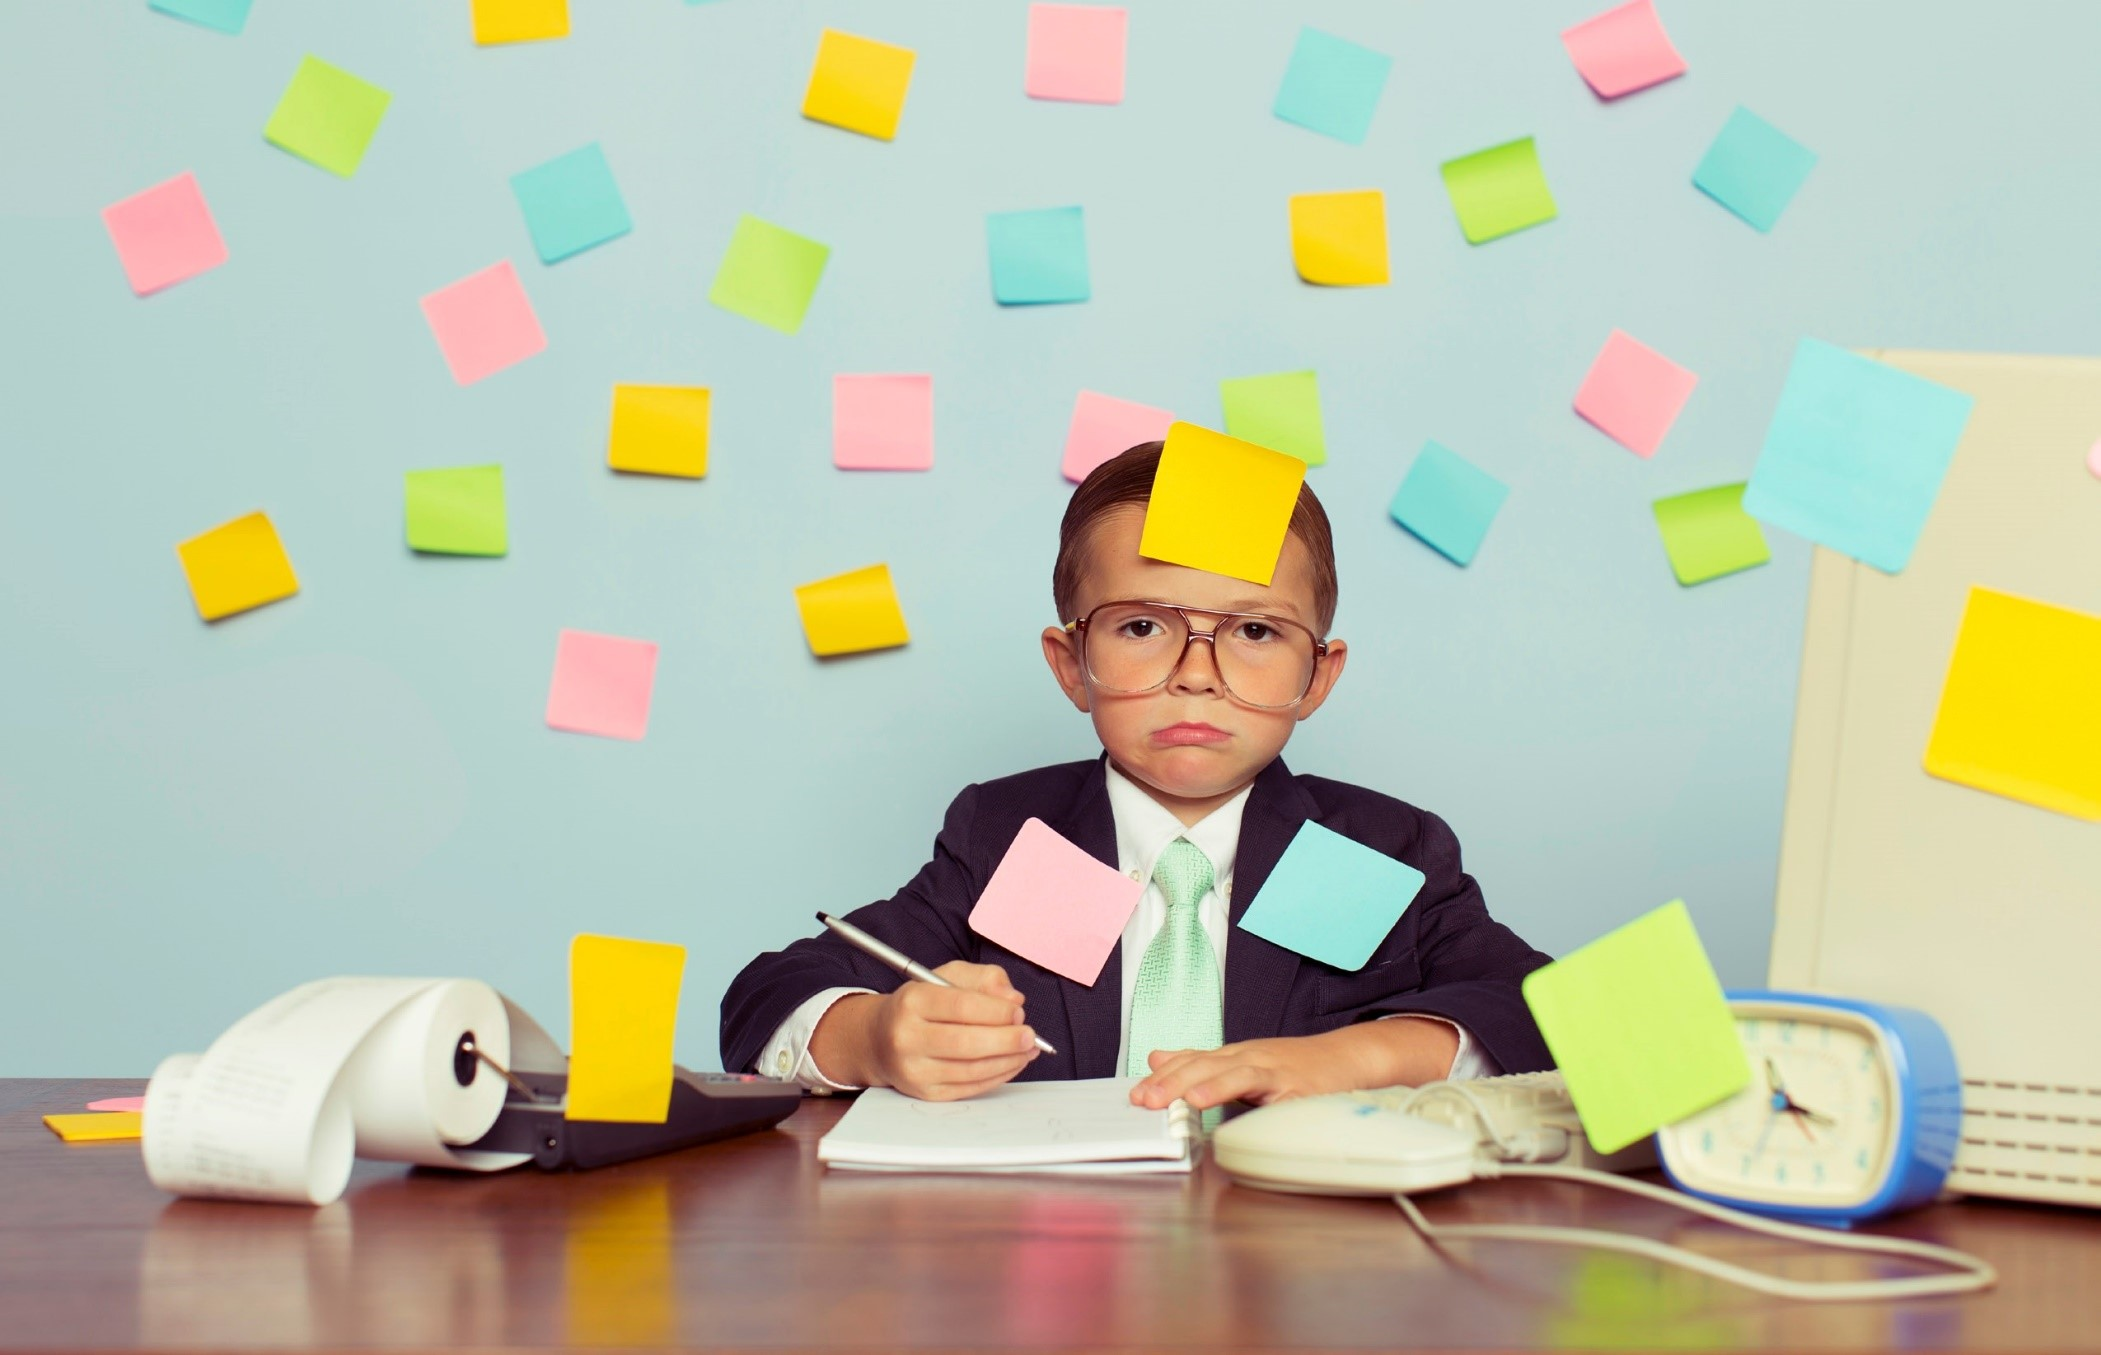 Child at desk covered in post-it notes